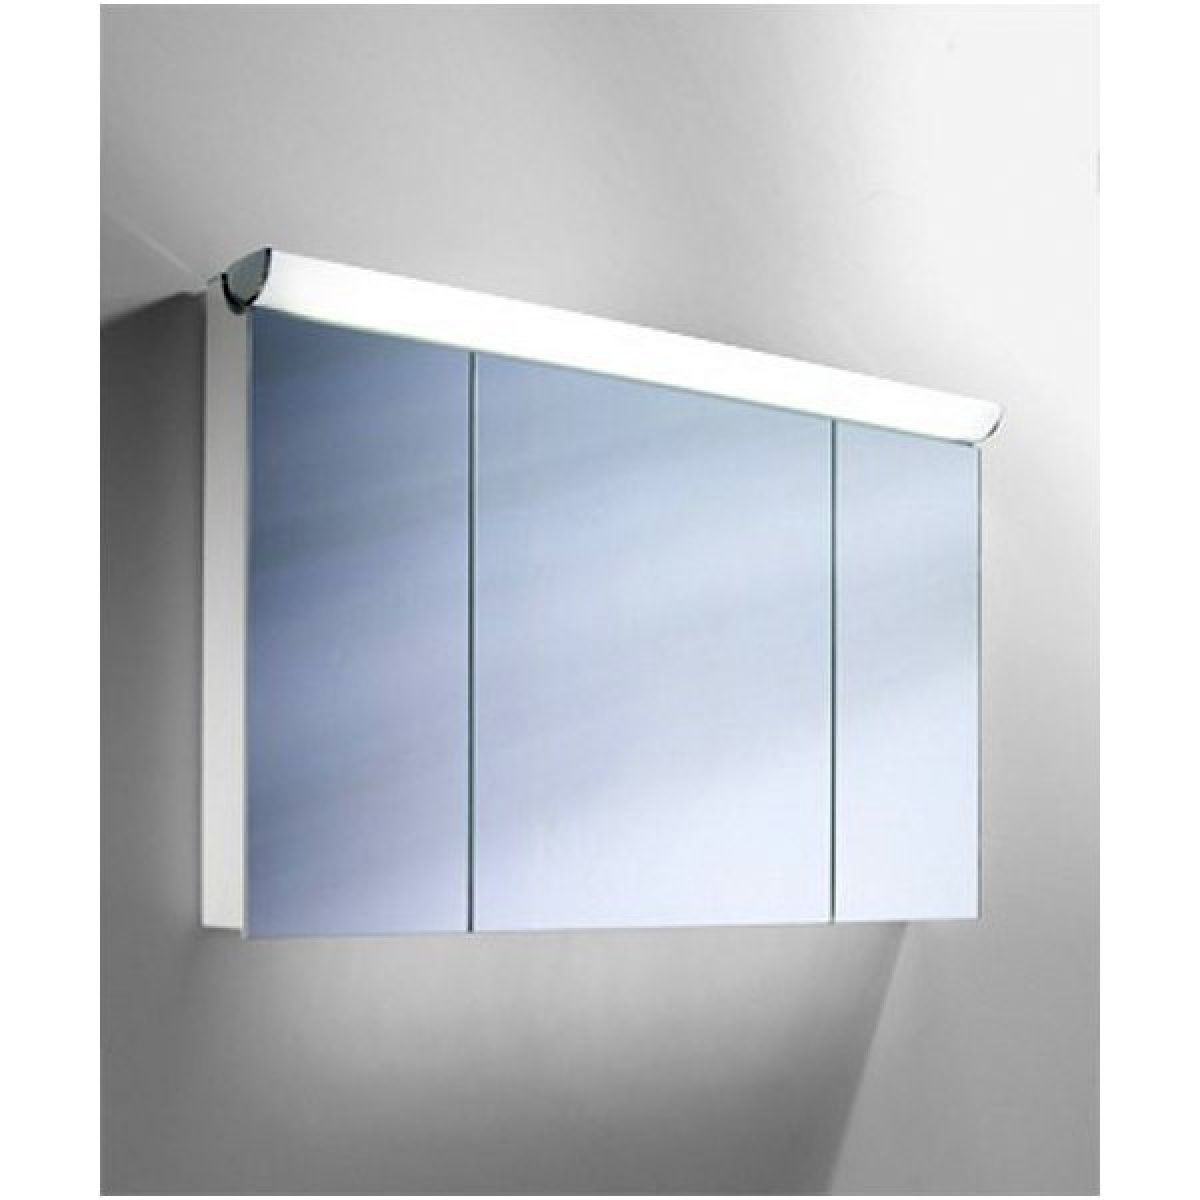 Mirrored Bathroom Cupboard Schneider Faceline 3 Door Illuminated Mirror Cabinet